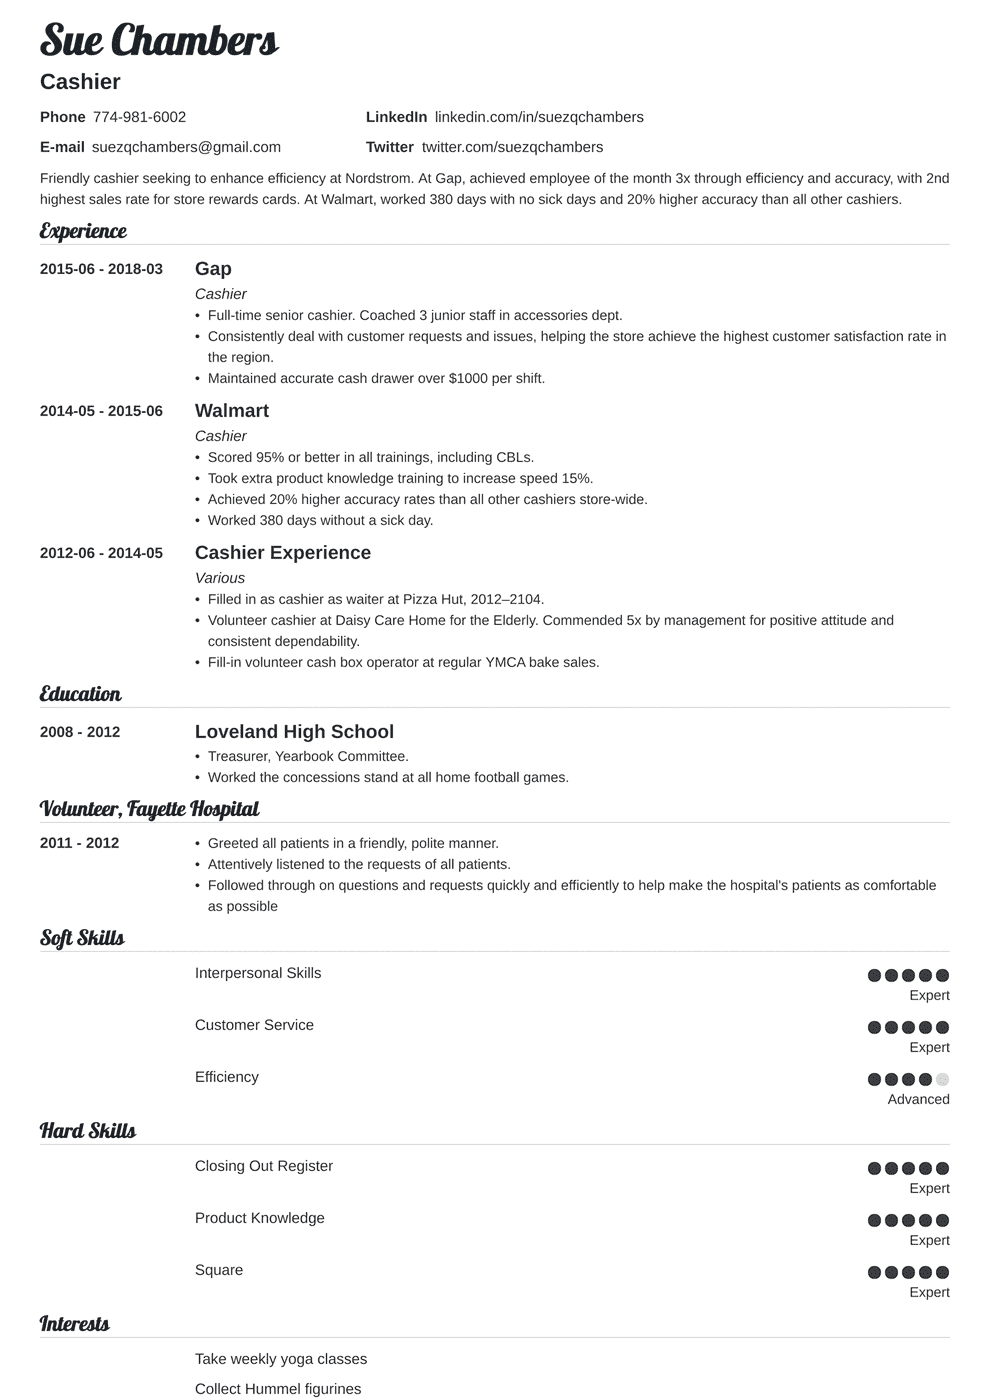 Cashier Resume Examples Cashier Resume Samples And Complete Writing Guide 20 Examples